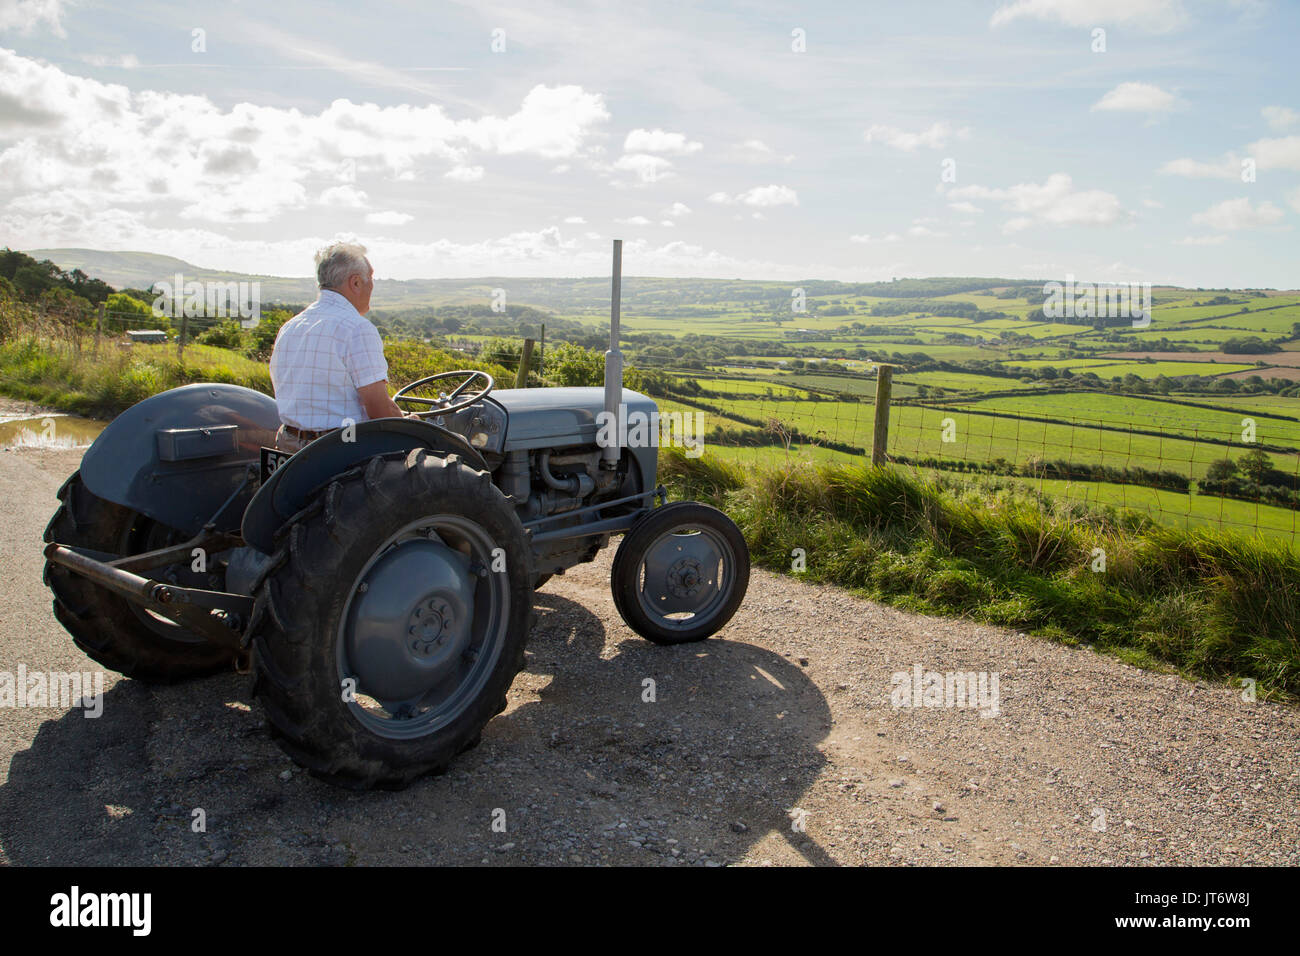 Farmer reminiscing on old tractor looking at farmland landscape - Stock Image